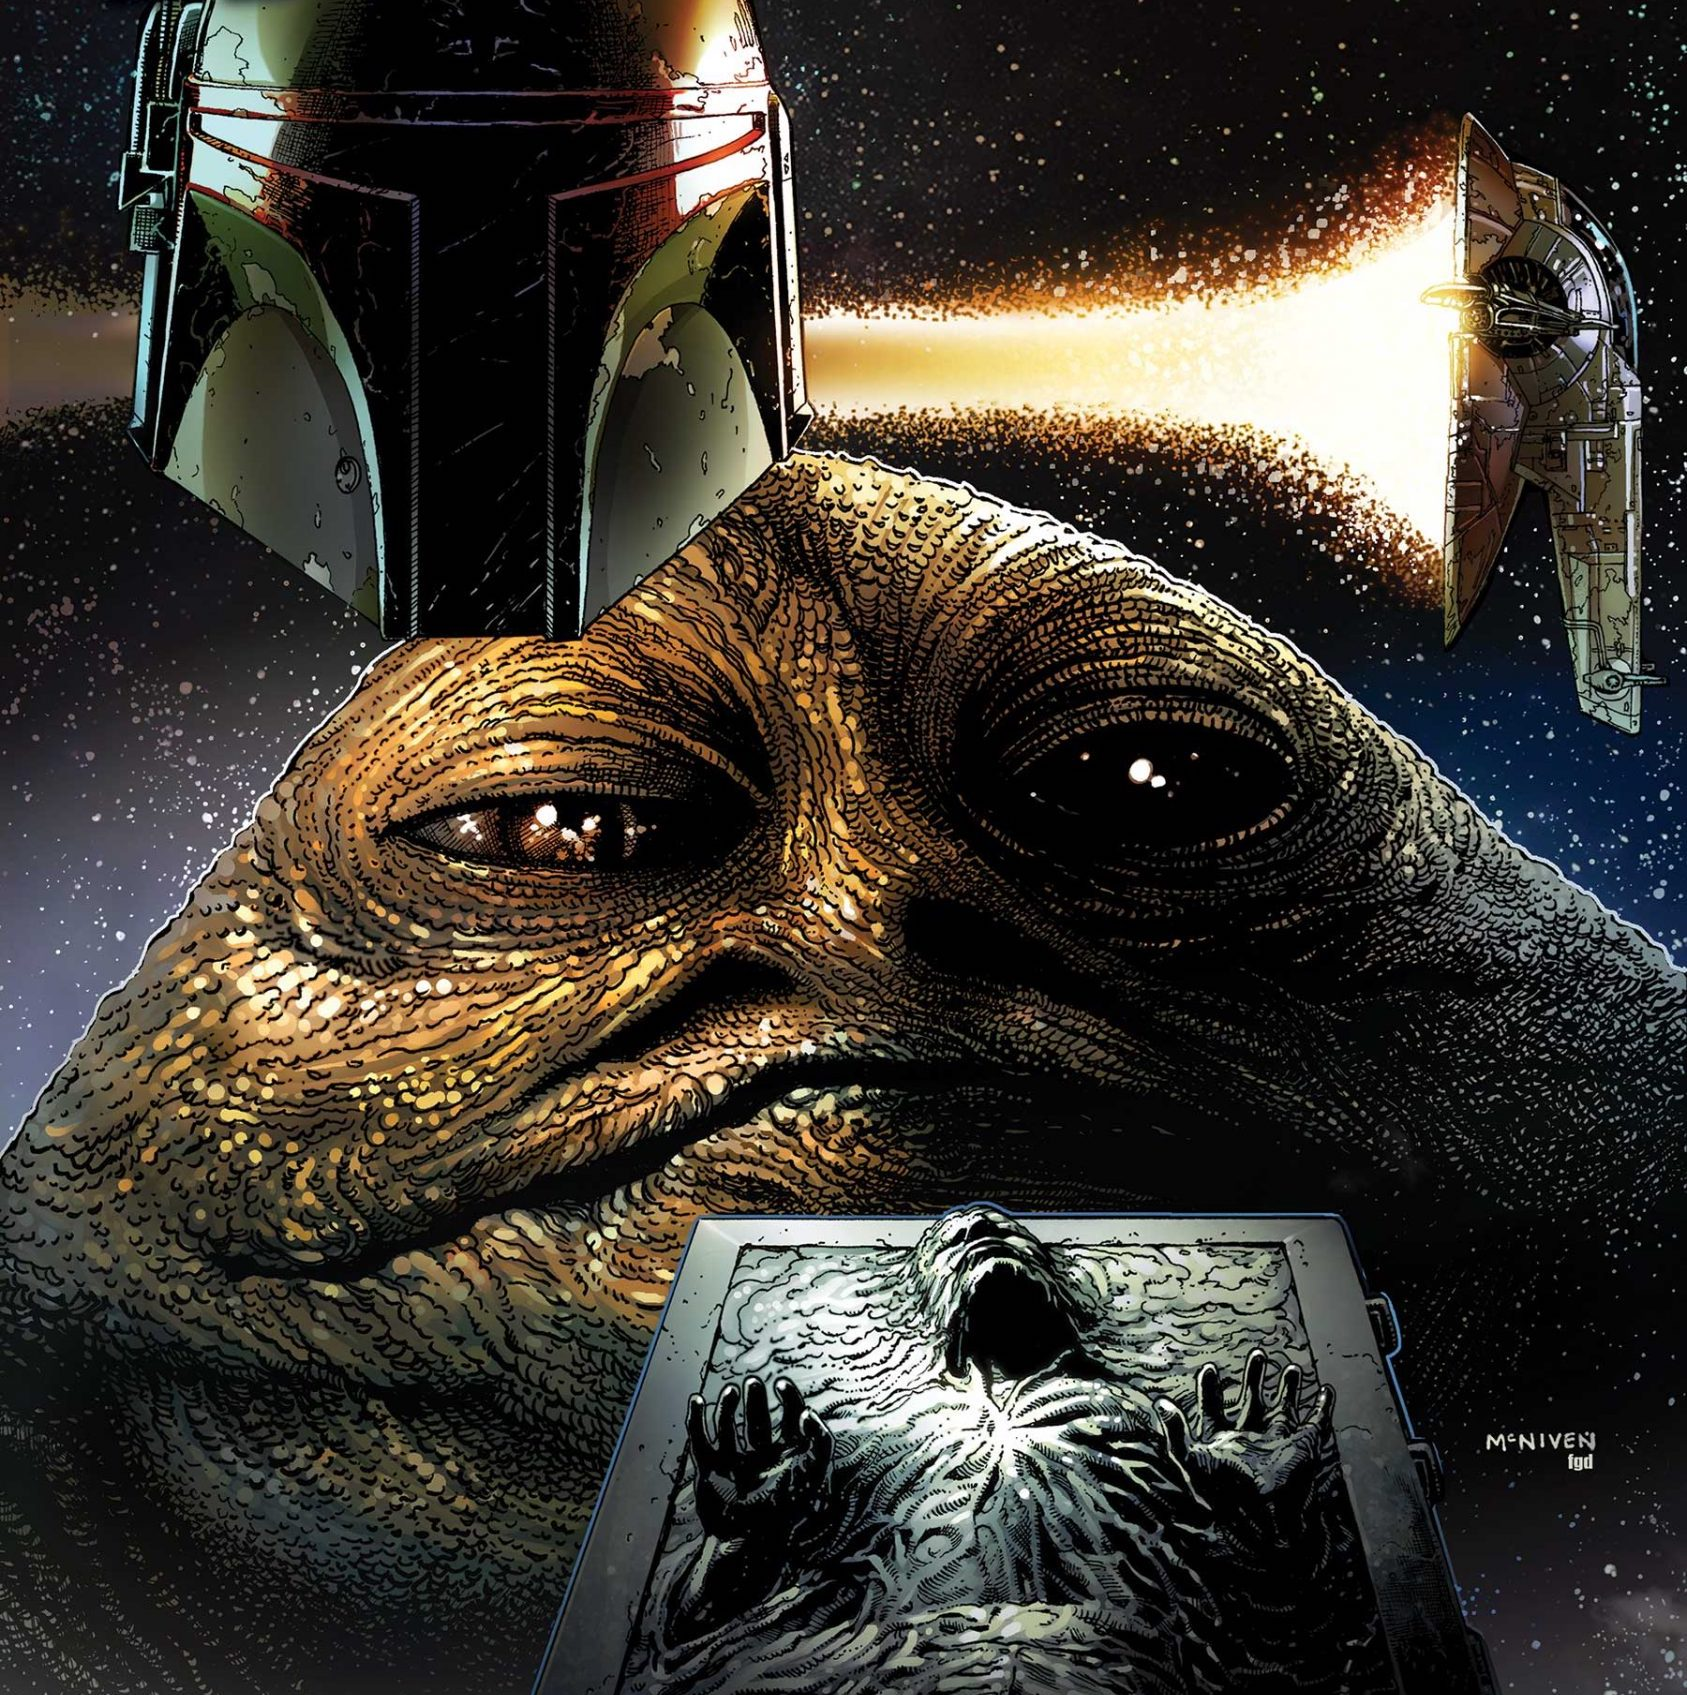 'Star Wars: War of the Bounty Hunters' #2 lights the fuse